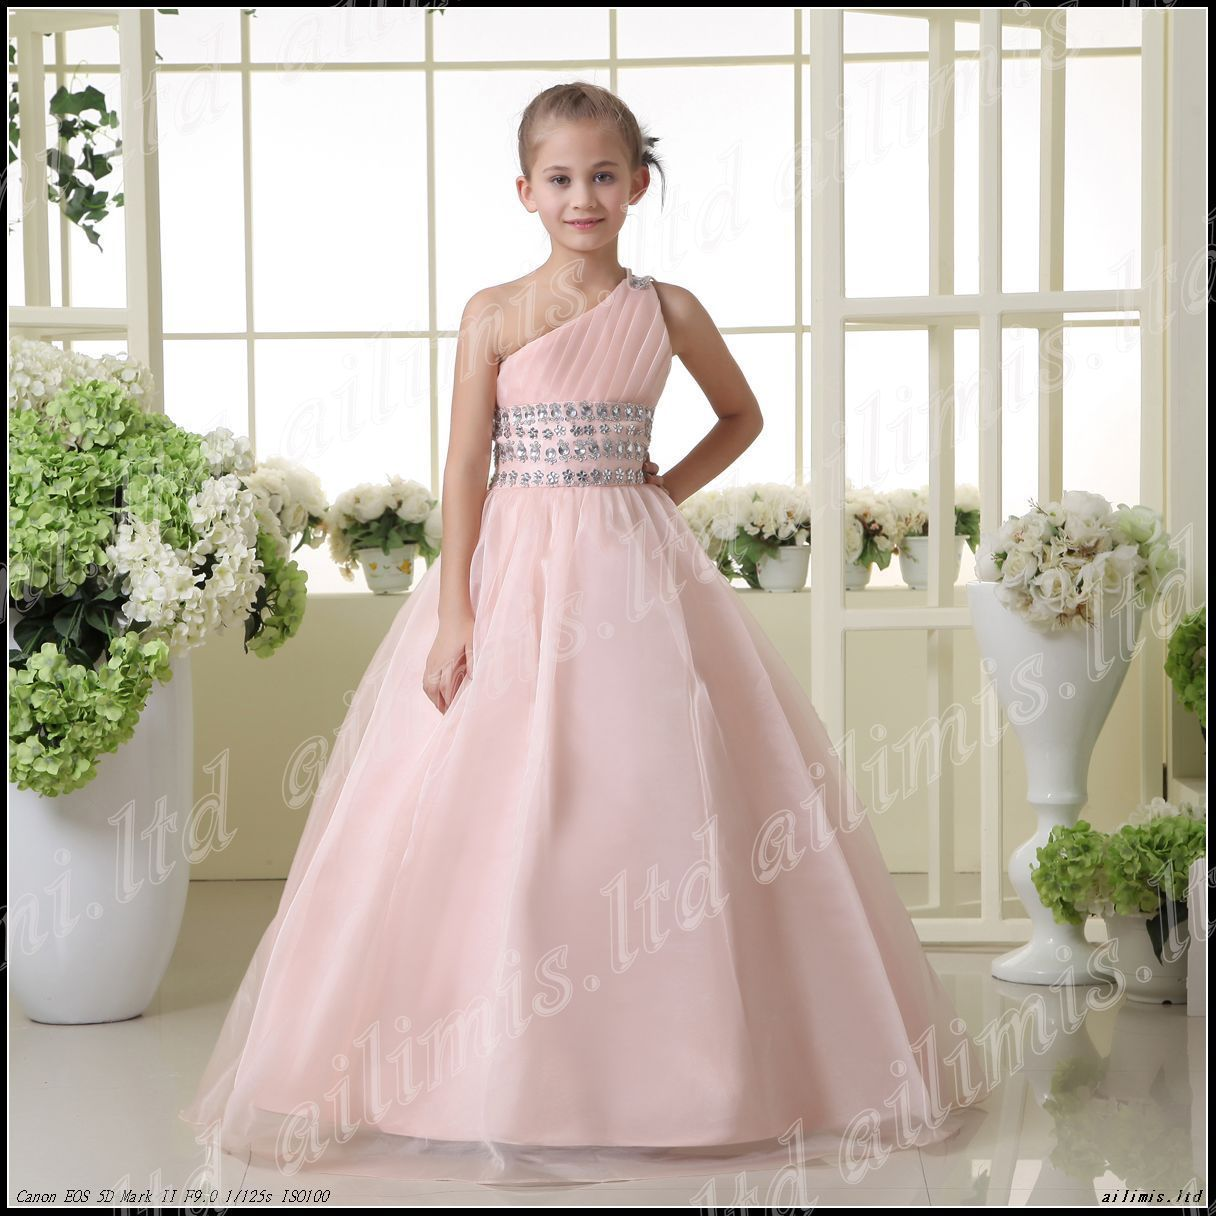 Pink One Shoulder Ball Gown Kid Pageant Formal Dance Party Prom Ebay